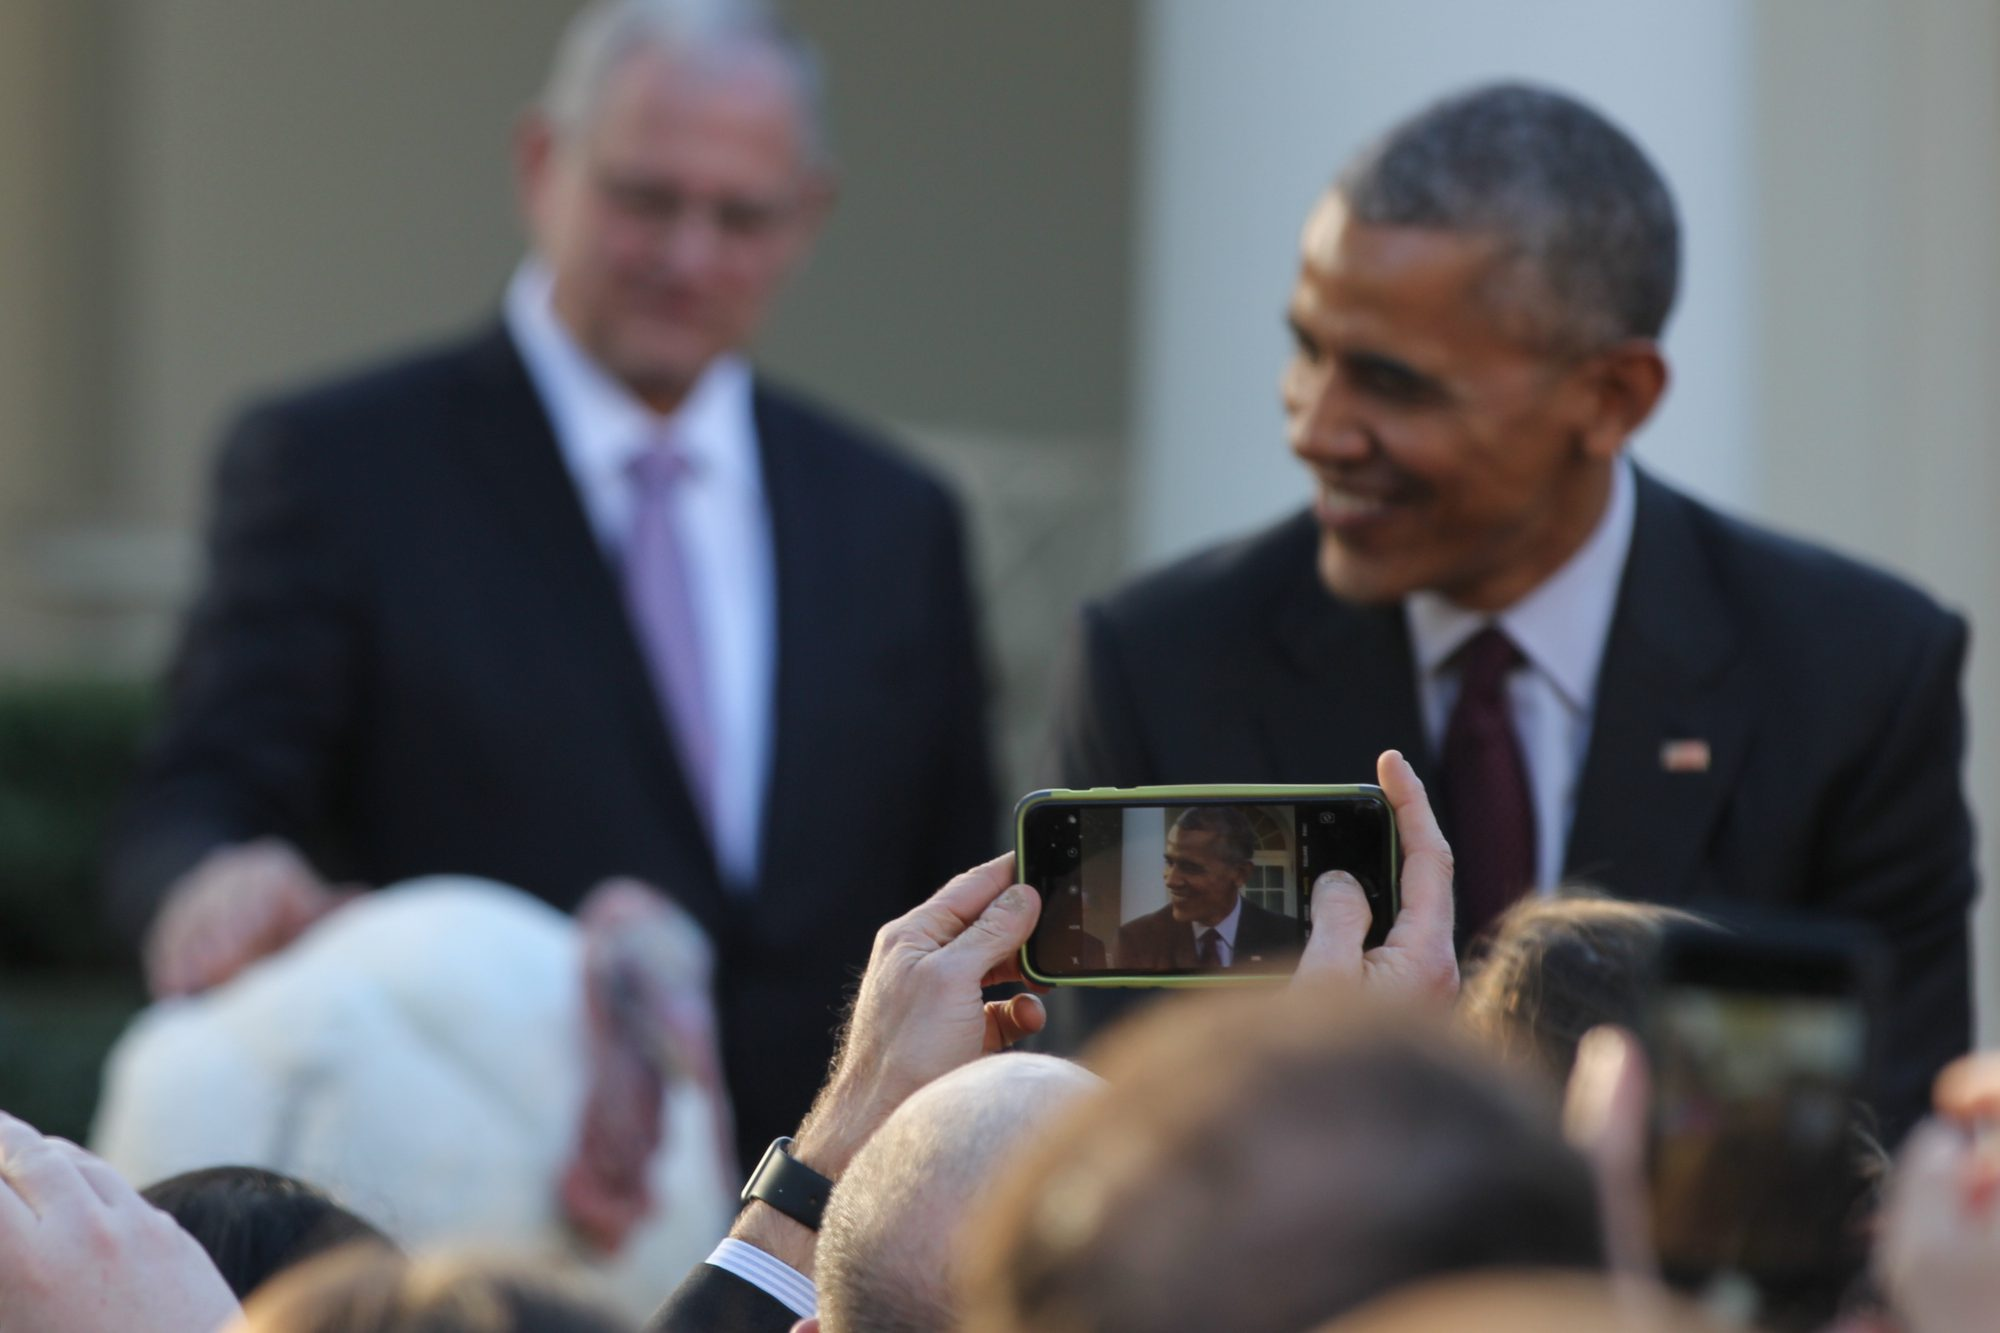 Obama poses with Tot as the crowd eagerly takes photos of them.